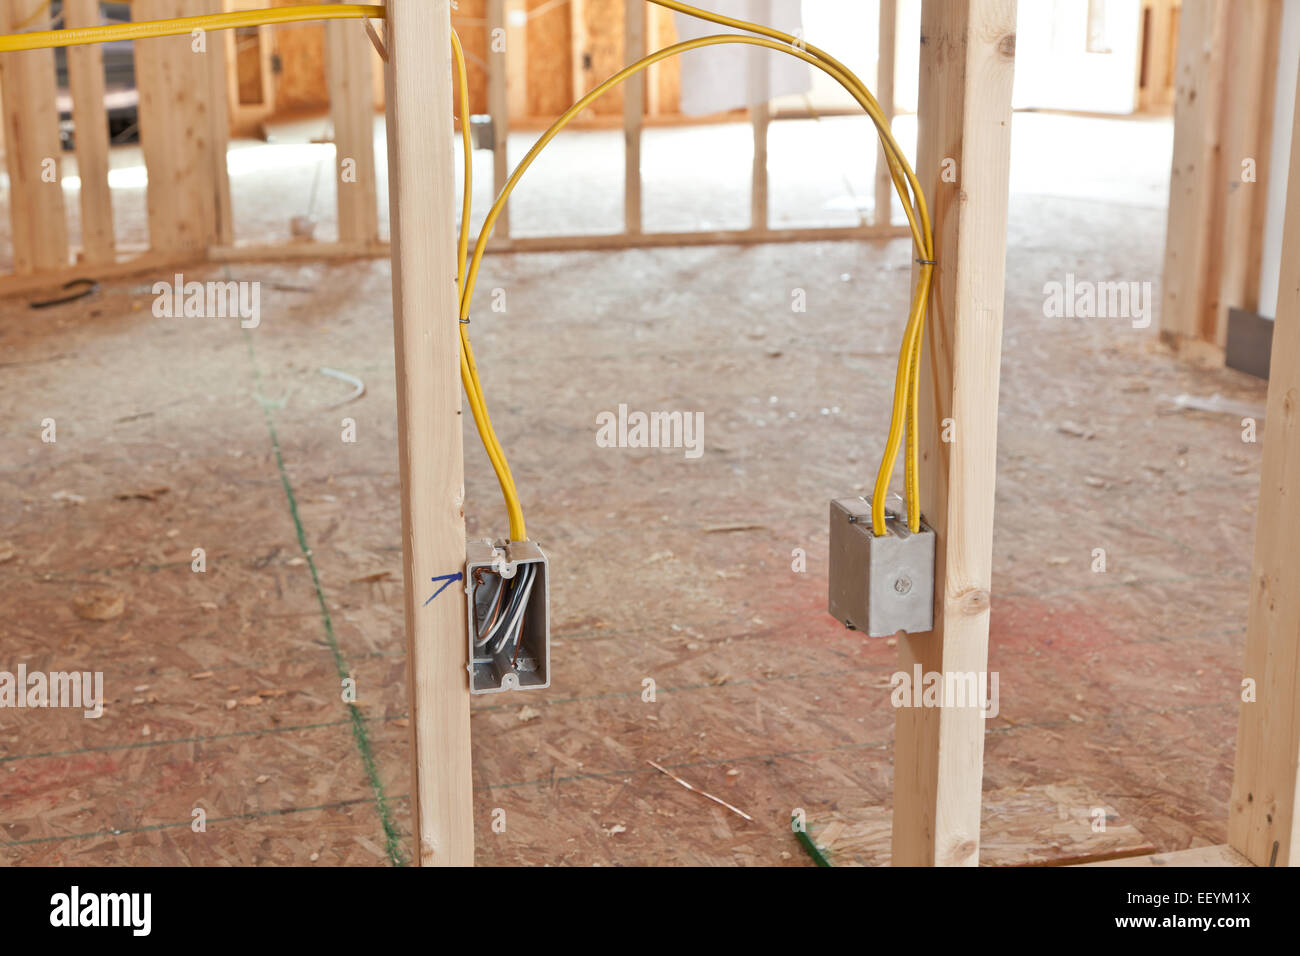 electrical wiring in new home construction stock photo royalty free image 78055094 alamy